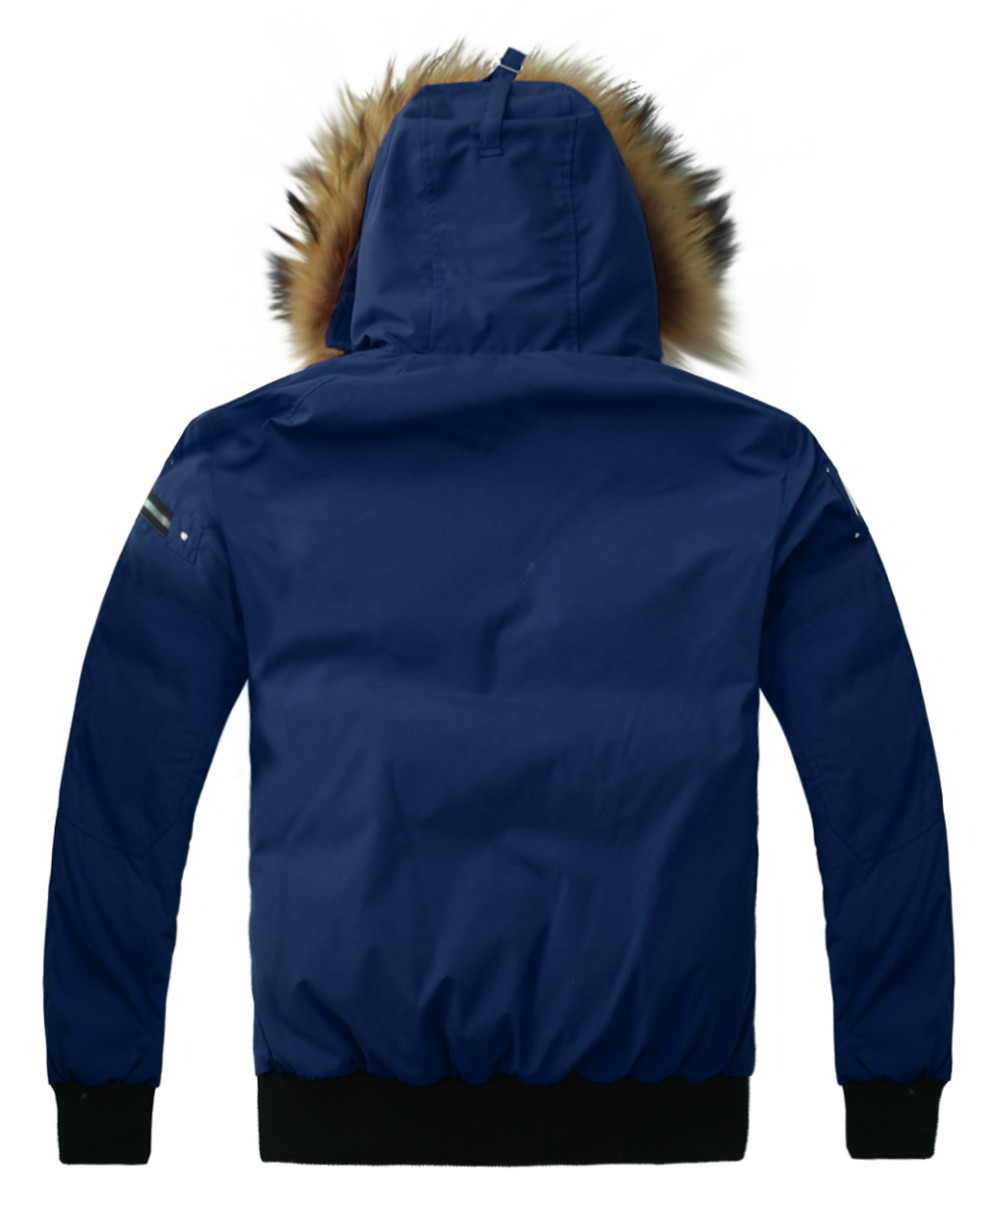 2014 Alaska mens winter jackets and coats down coat jacket Navy wholesale free shipping